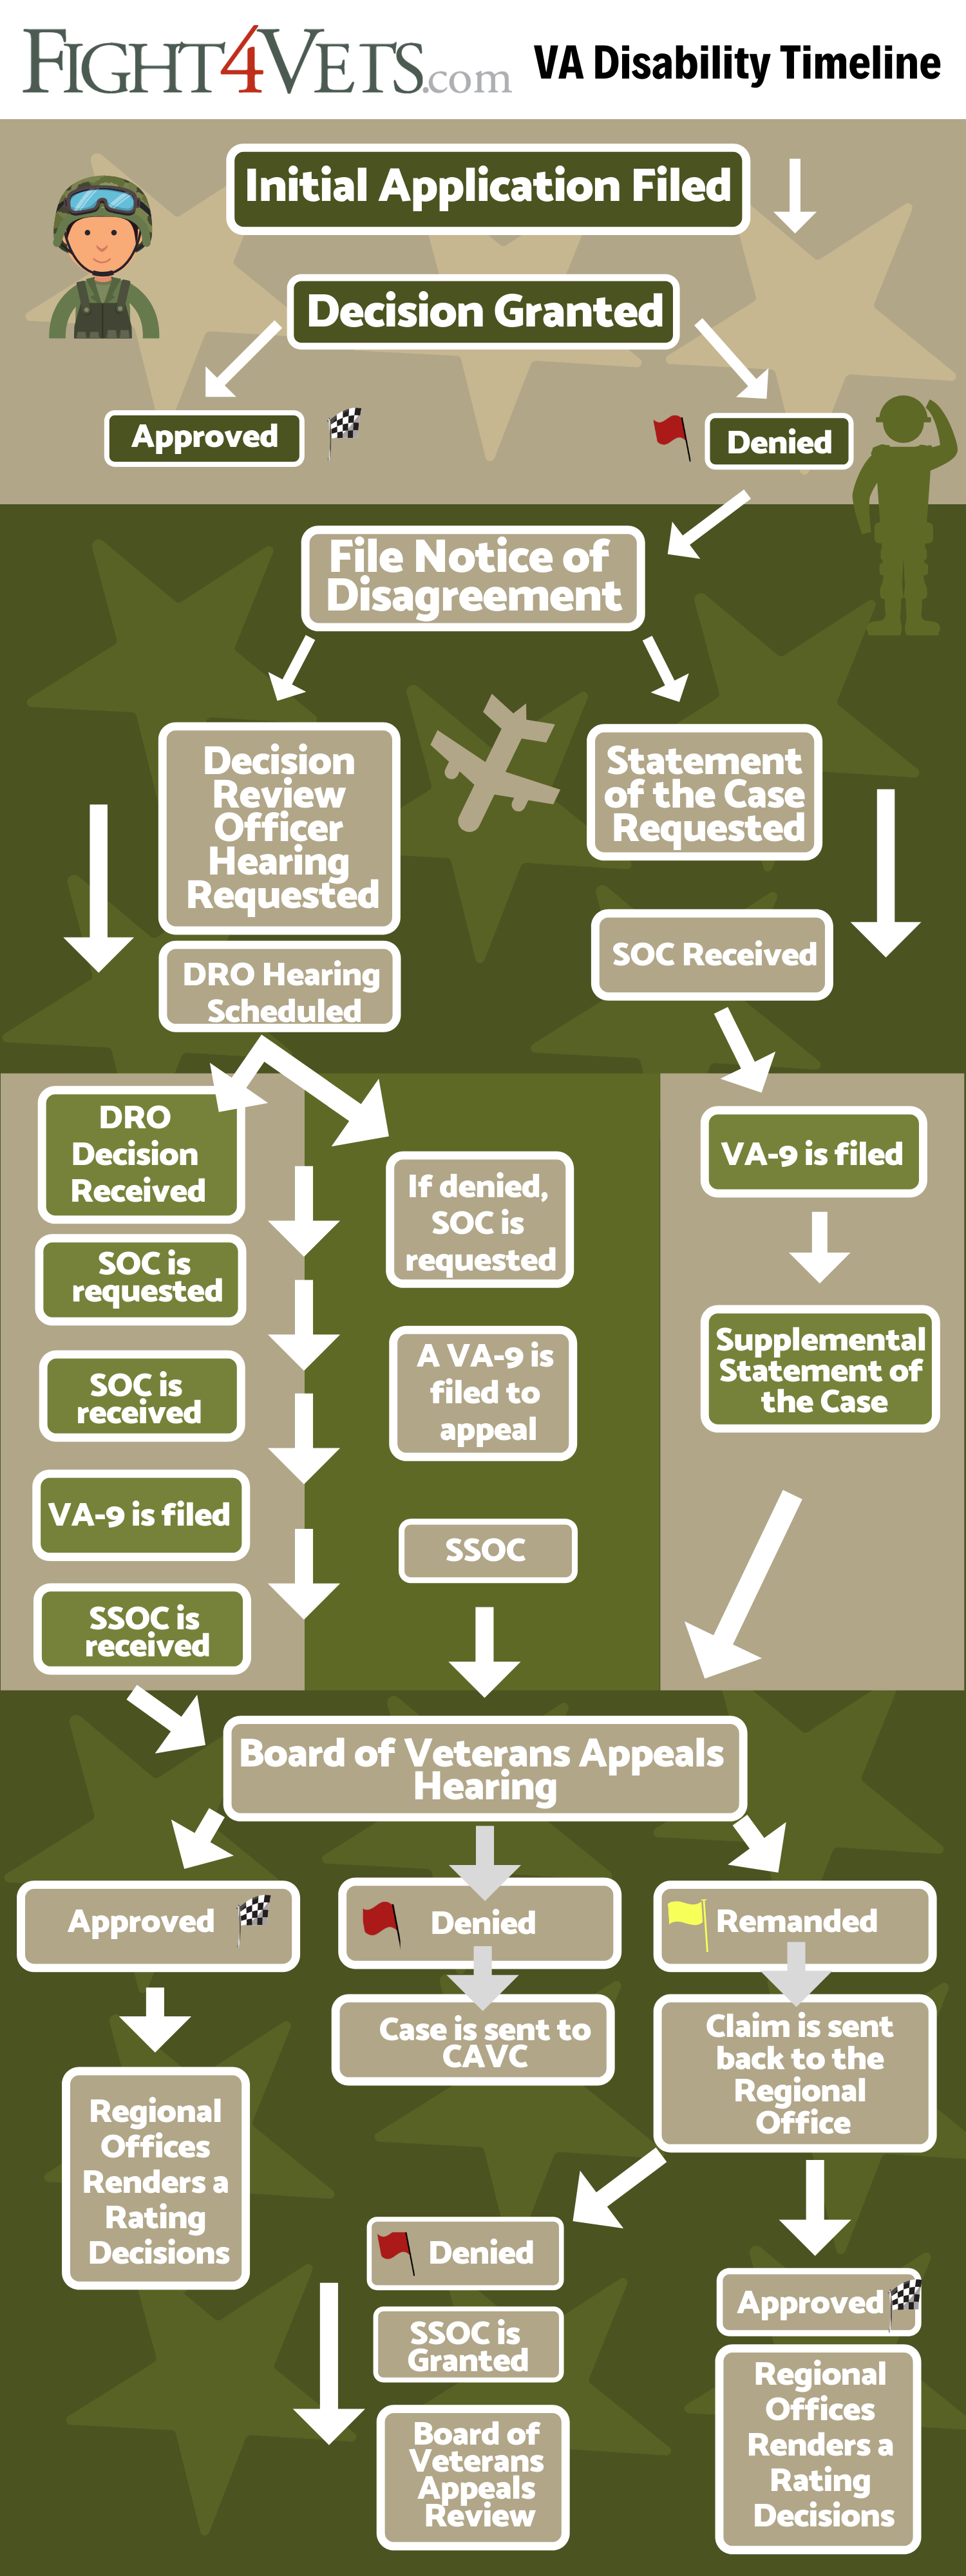 VA Appeals Timeline | VA Appeal Process | Fight4vets